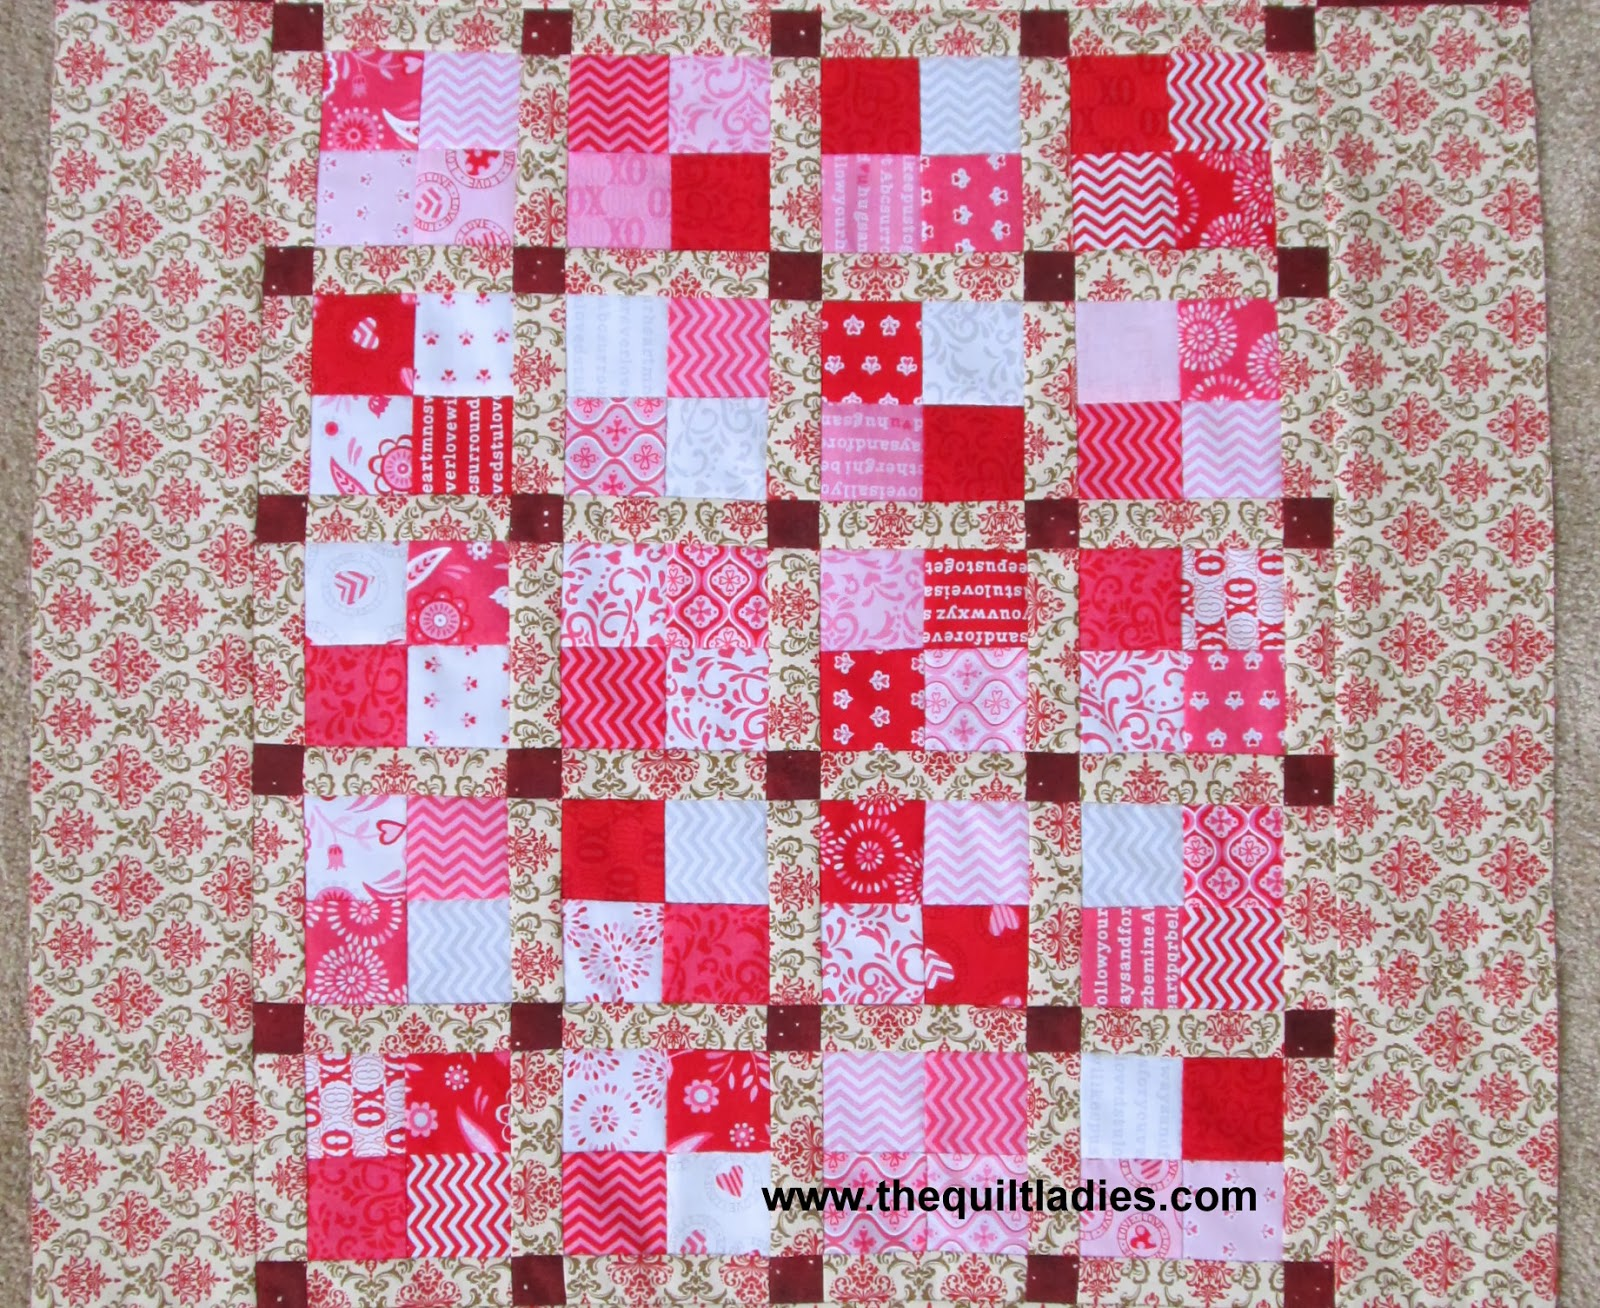 table topper made of four patch quilt blocks